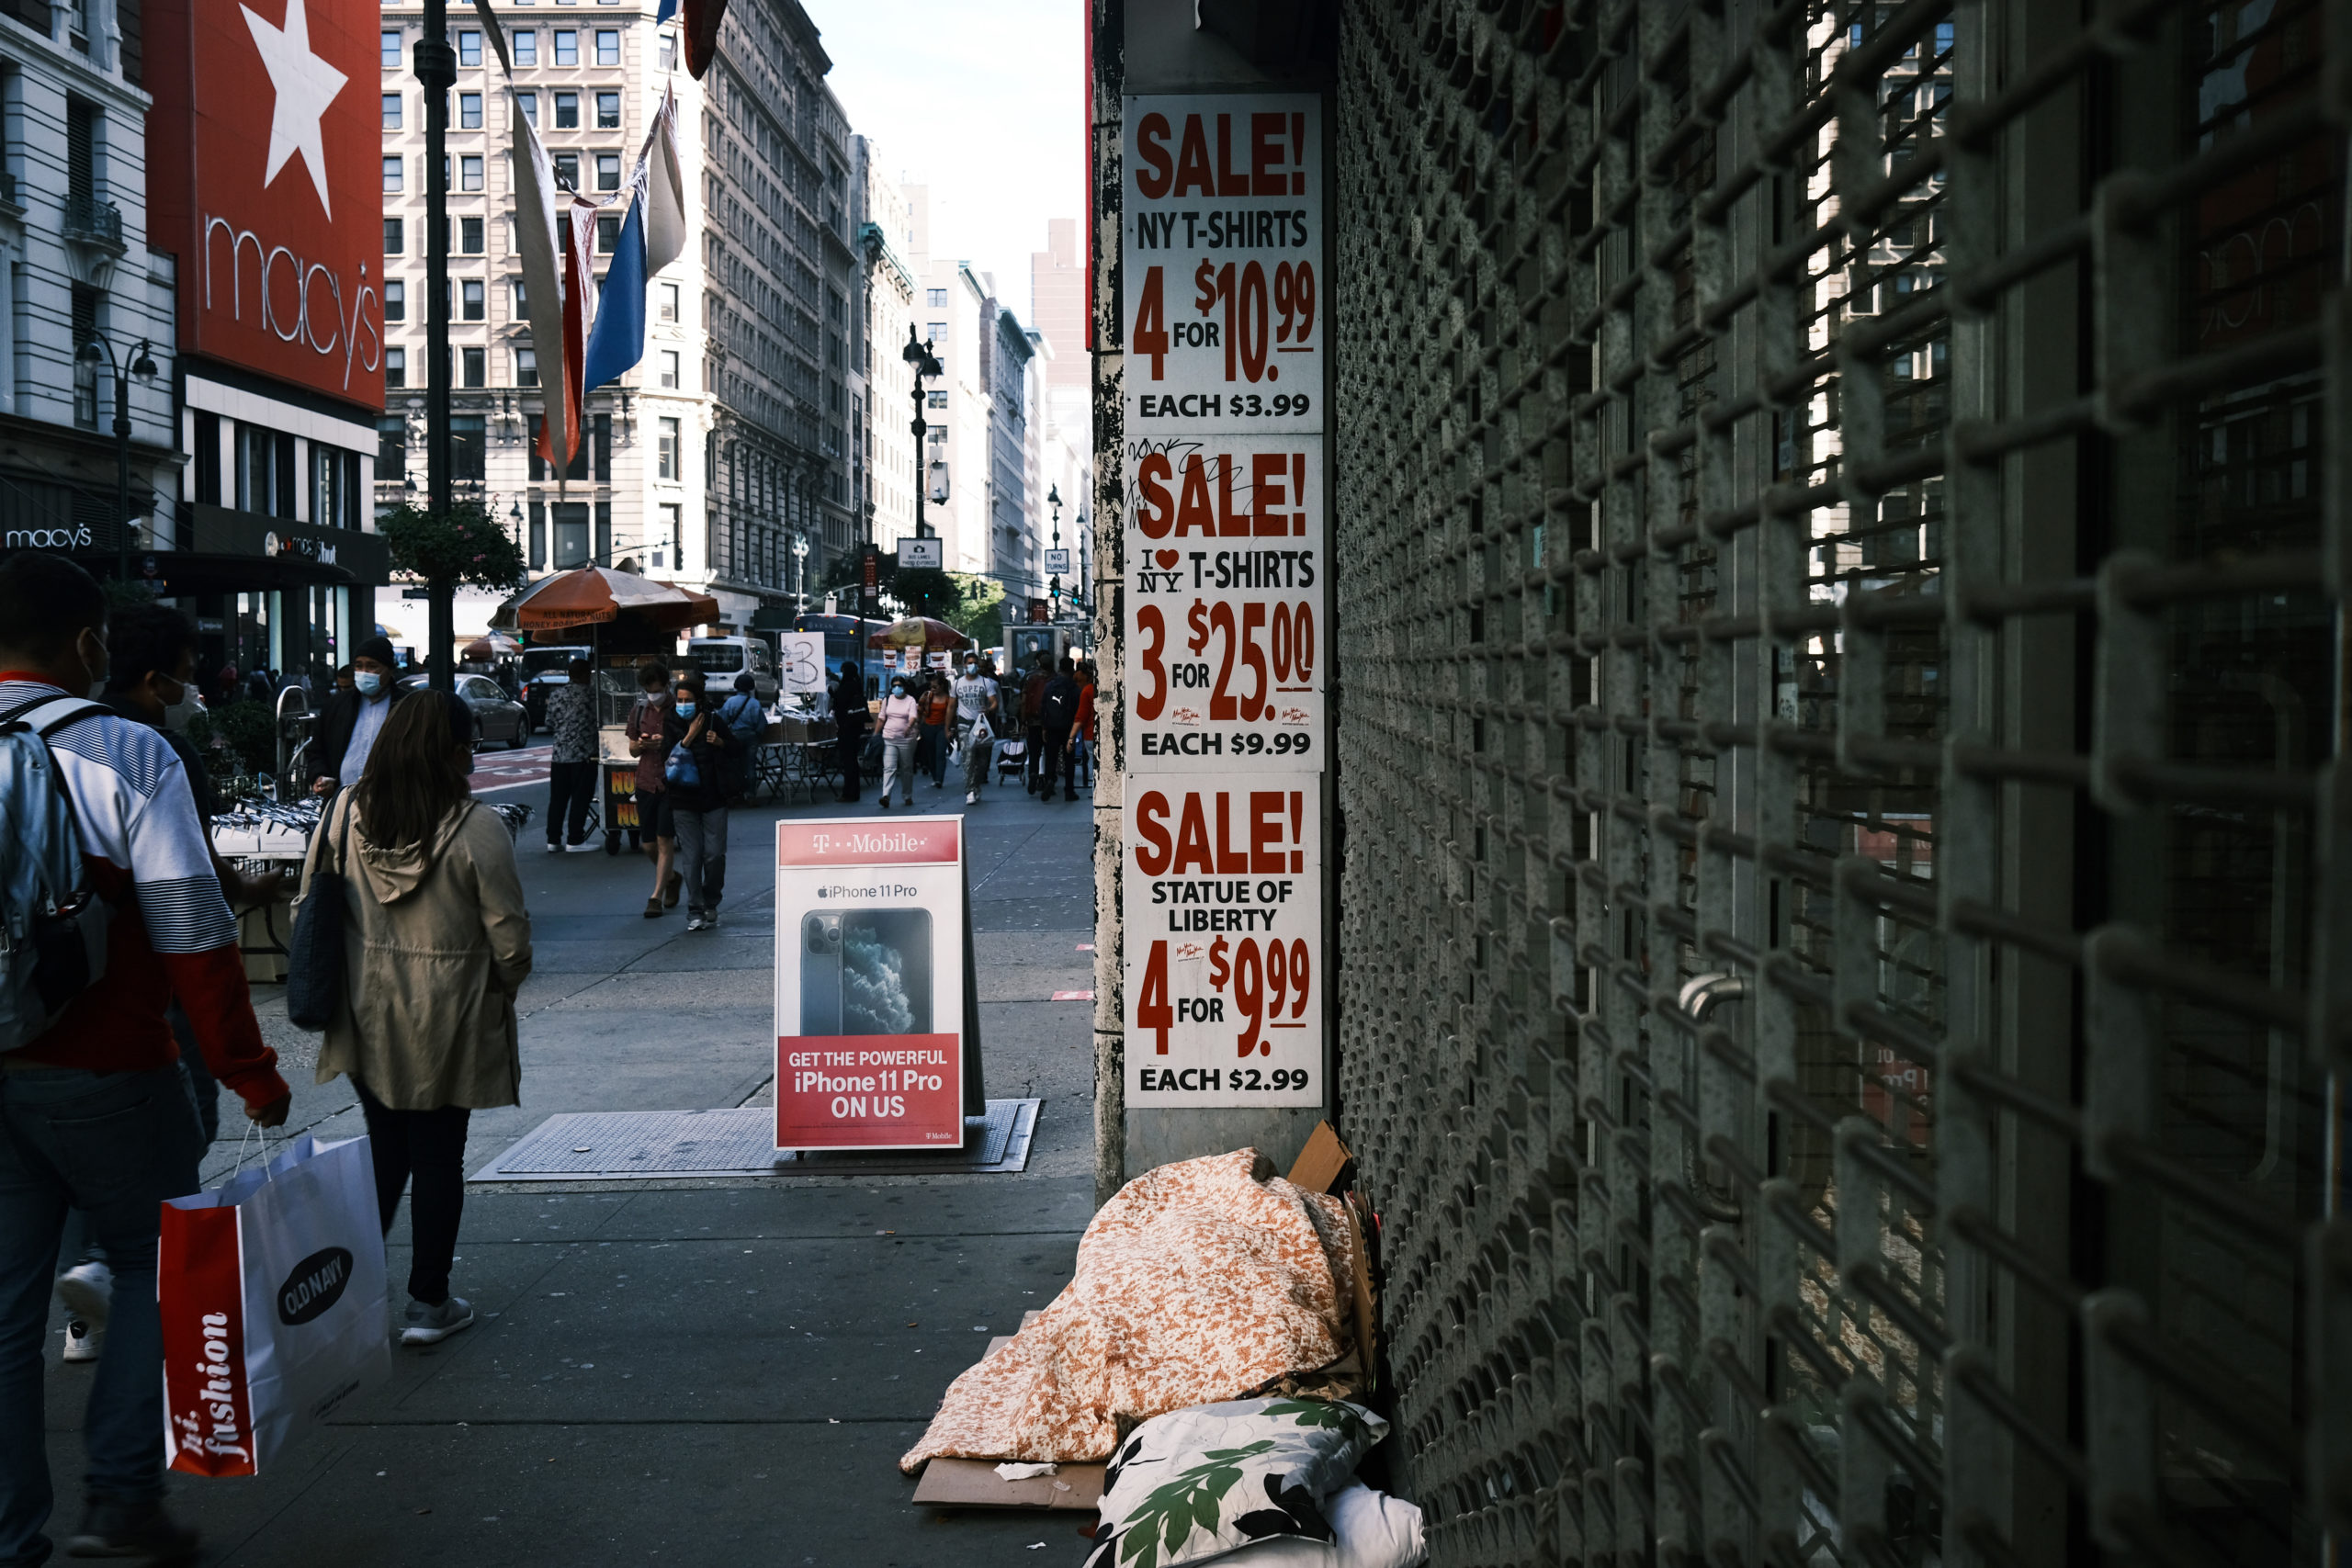 A New York City business advertises a sale in October. (Spencer Platt/Getty Images)